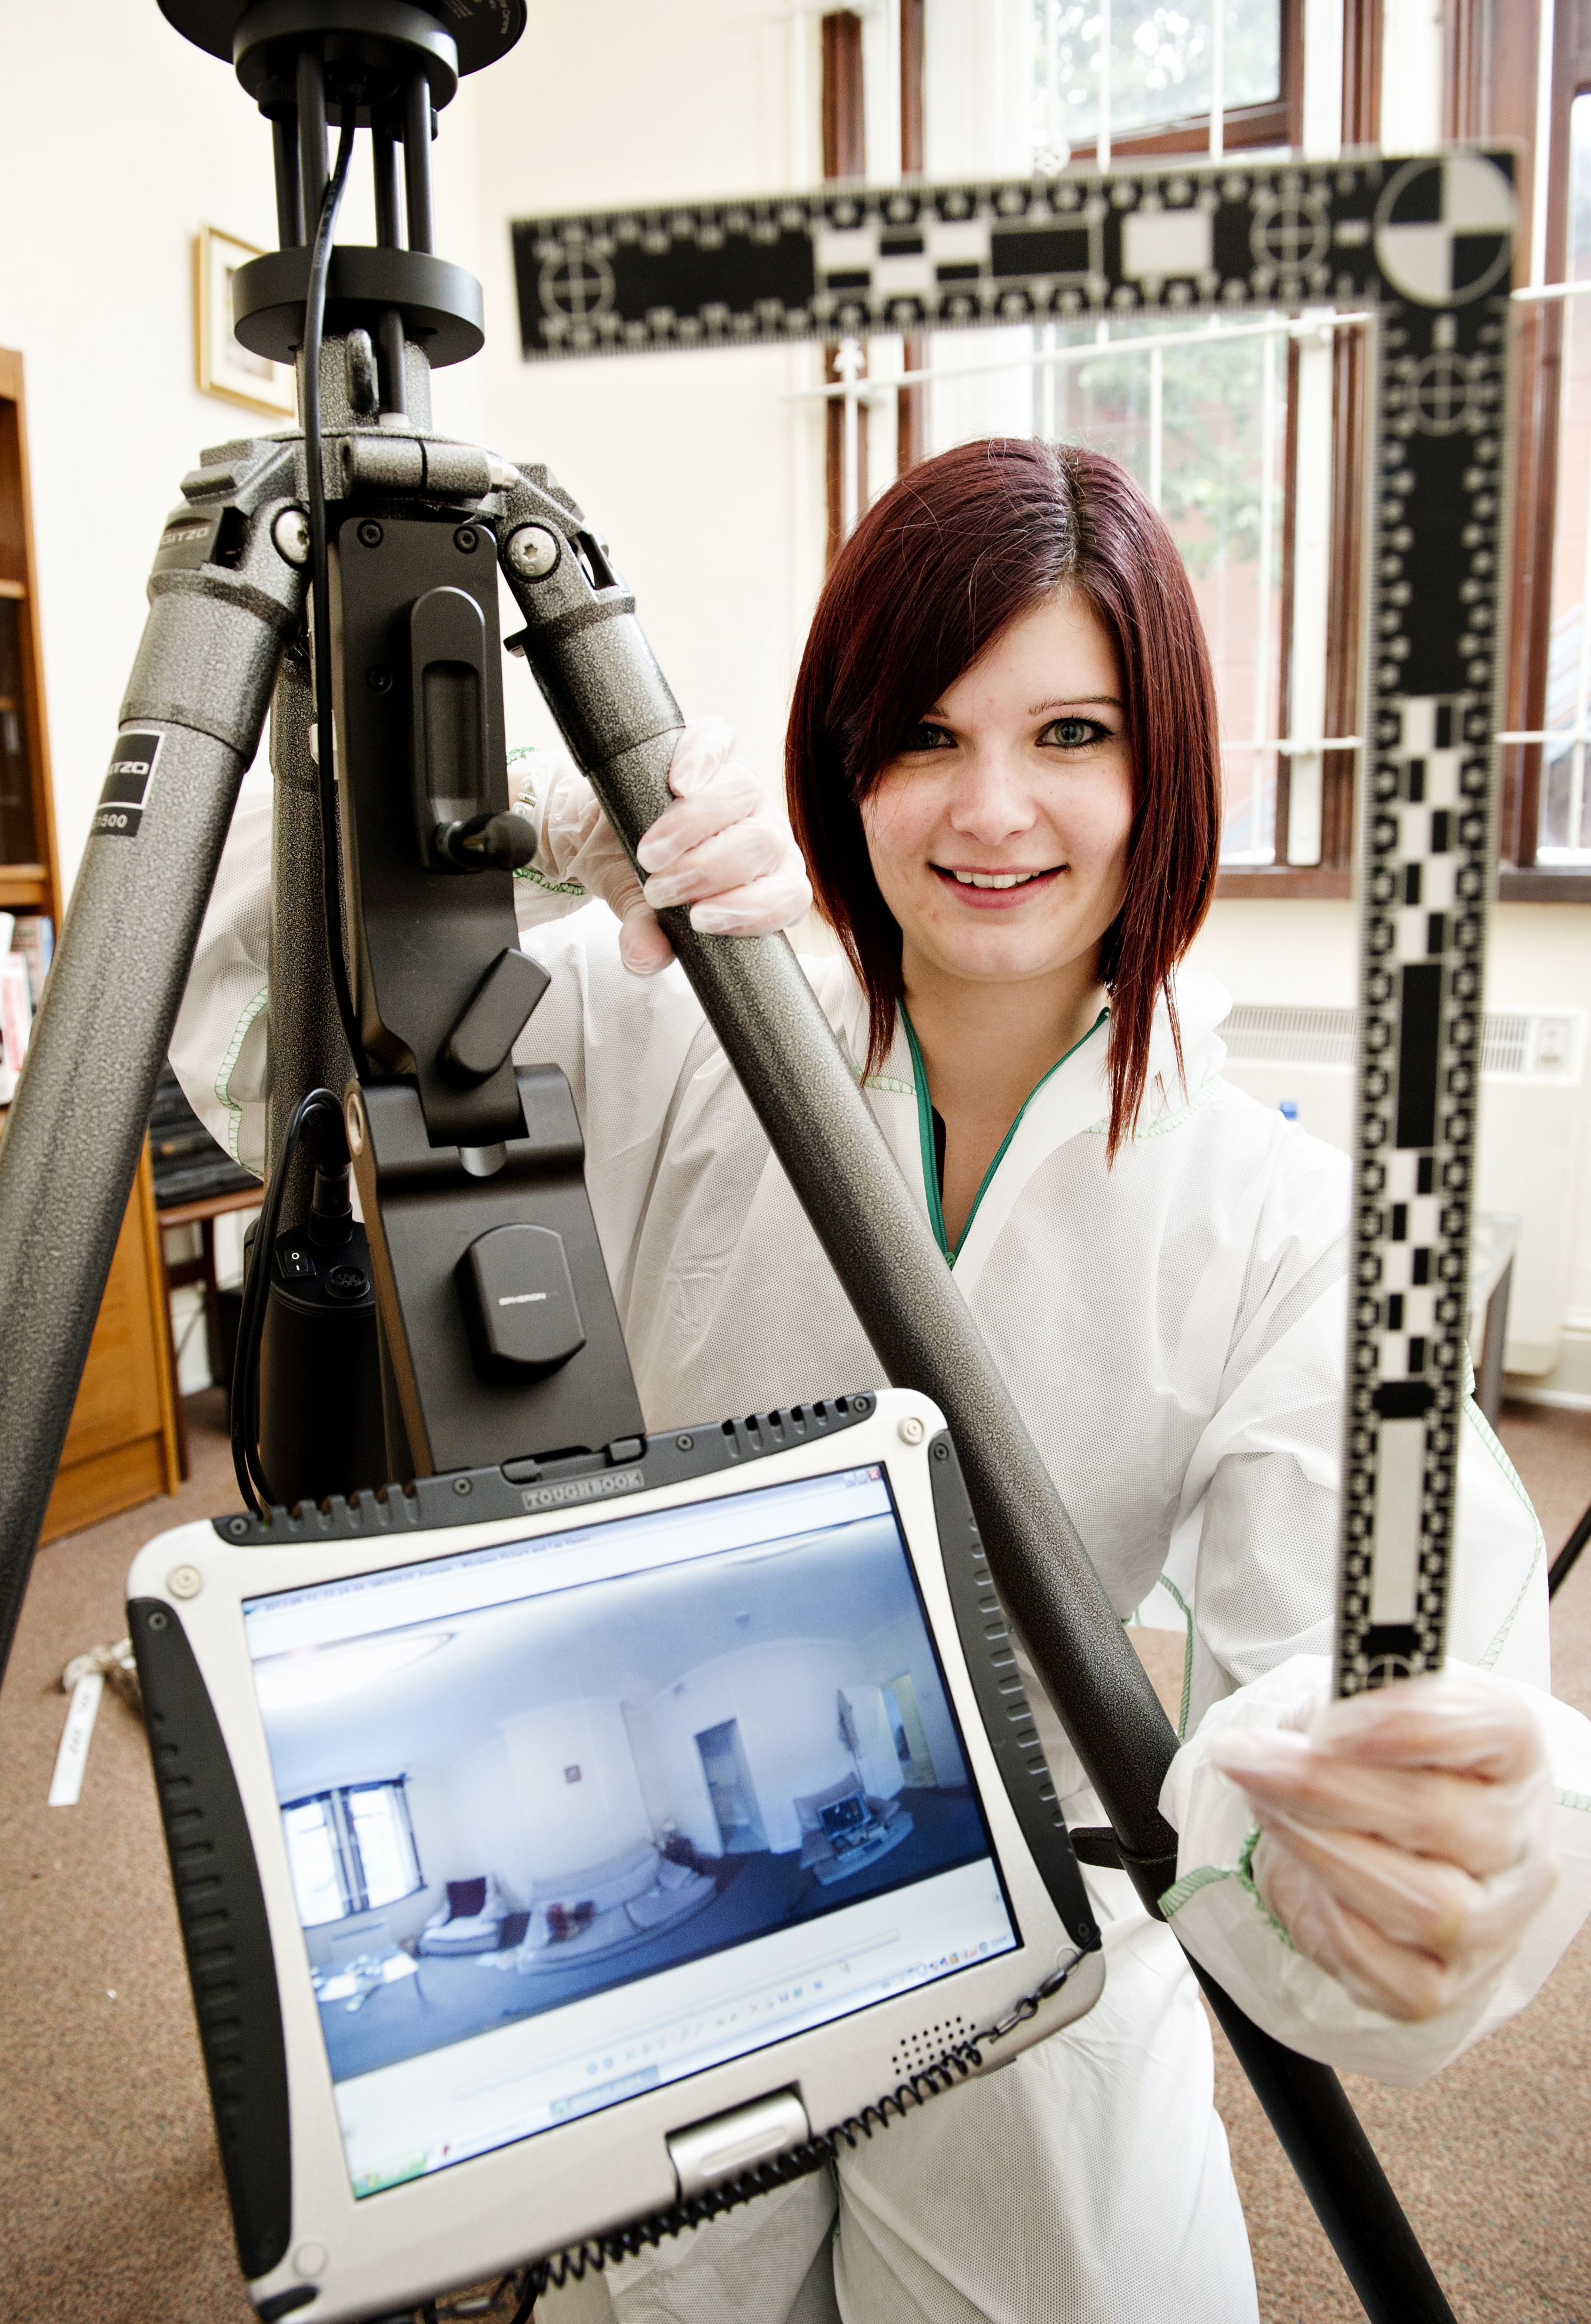 Interview with Lecturer in Forensic Science Dr Kayleigh Sheppard